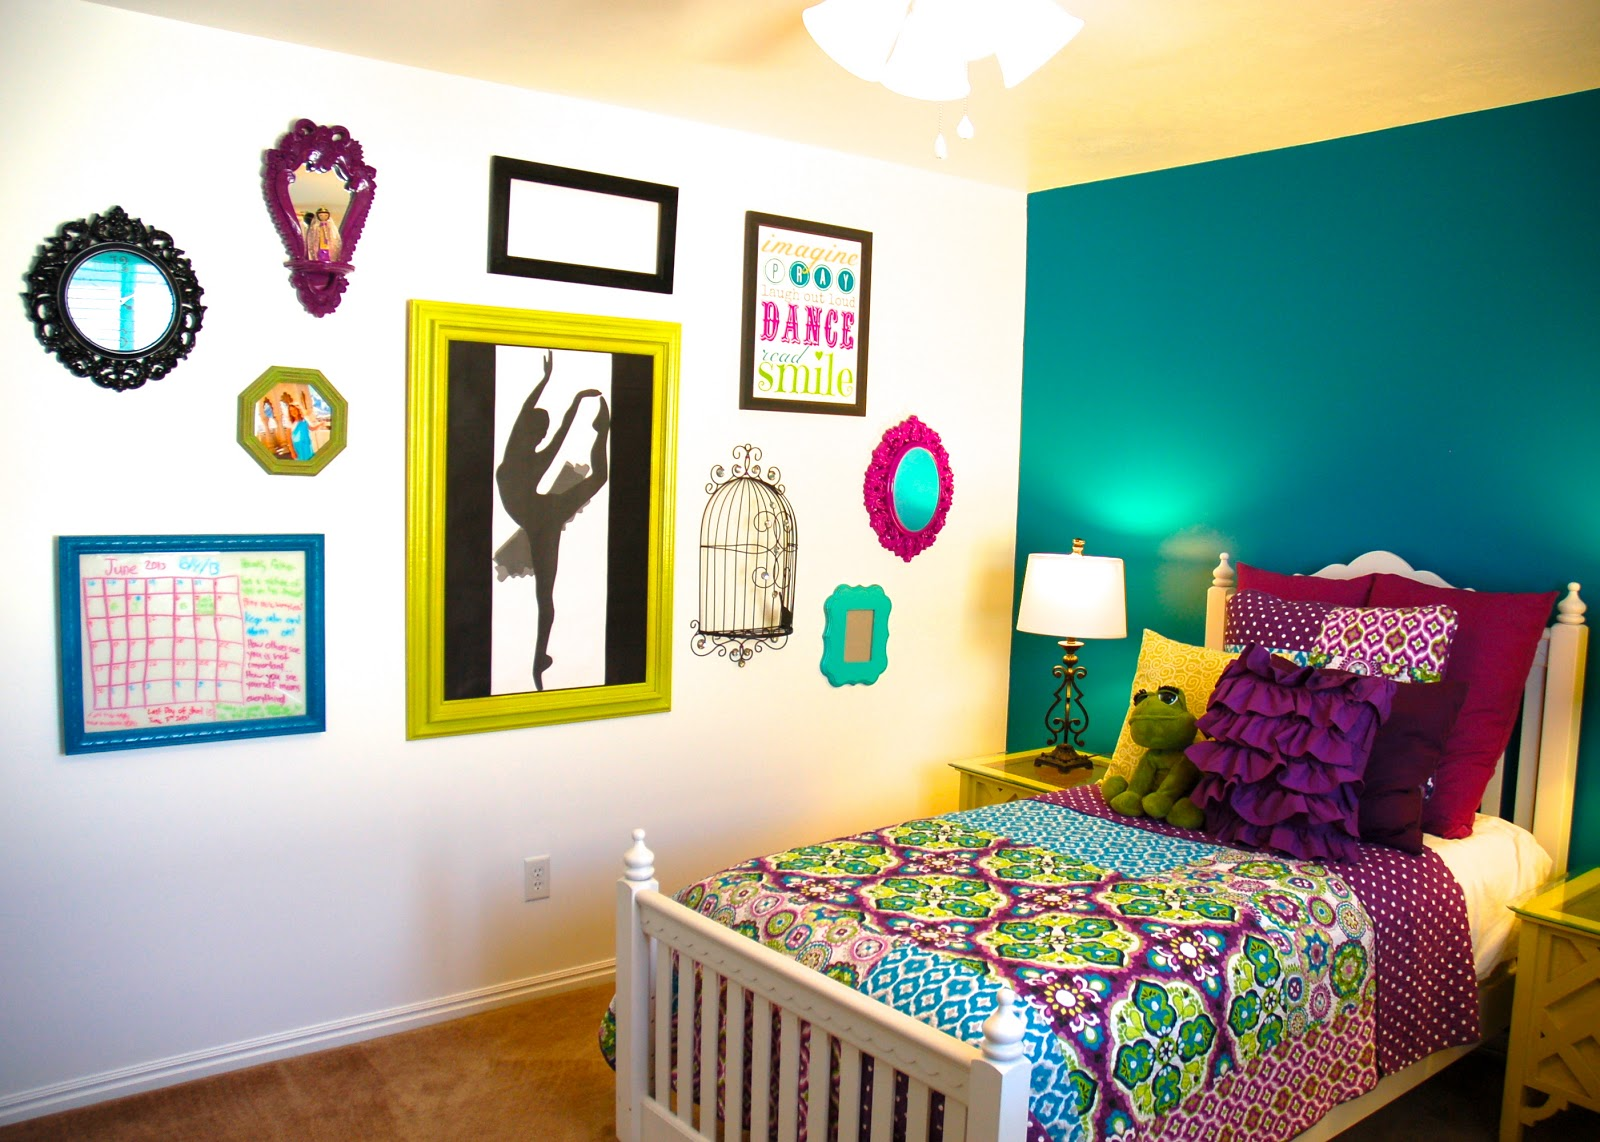 Lovely rooms for tweens 12 top photos cute homes - Cute room ideas for tweens ...